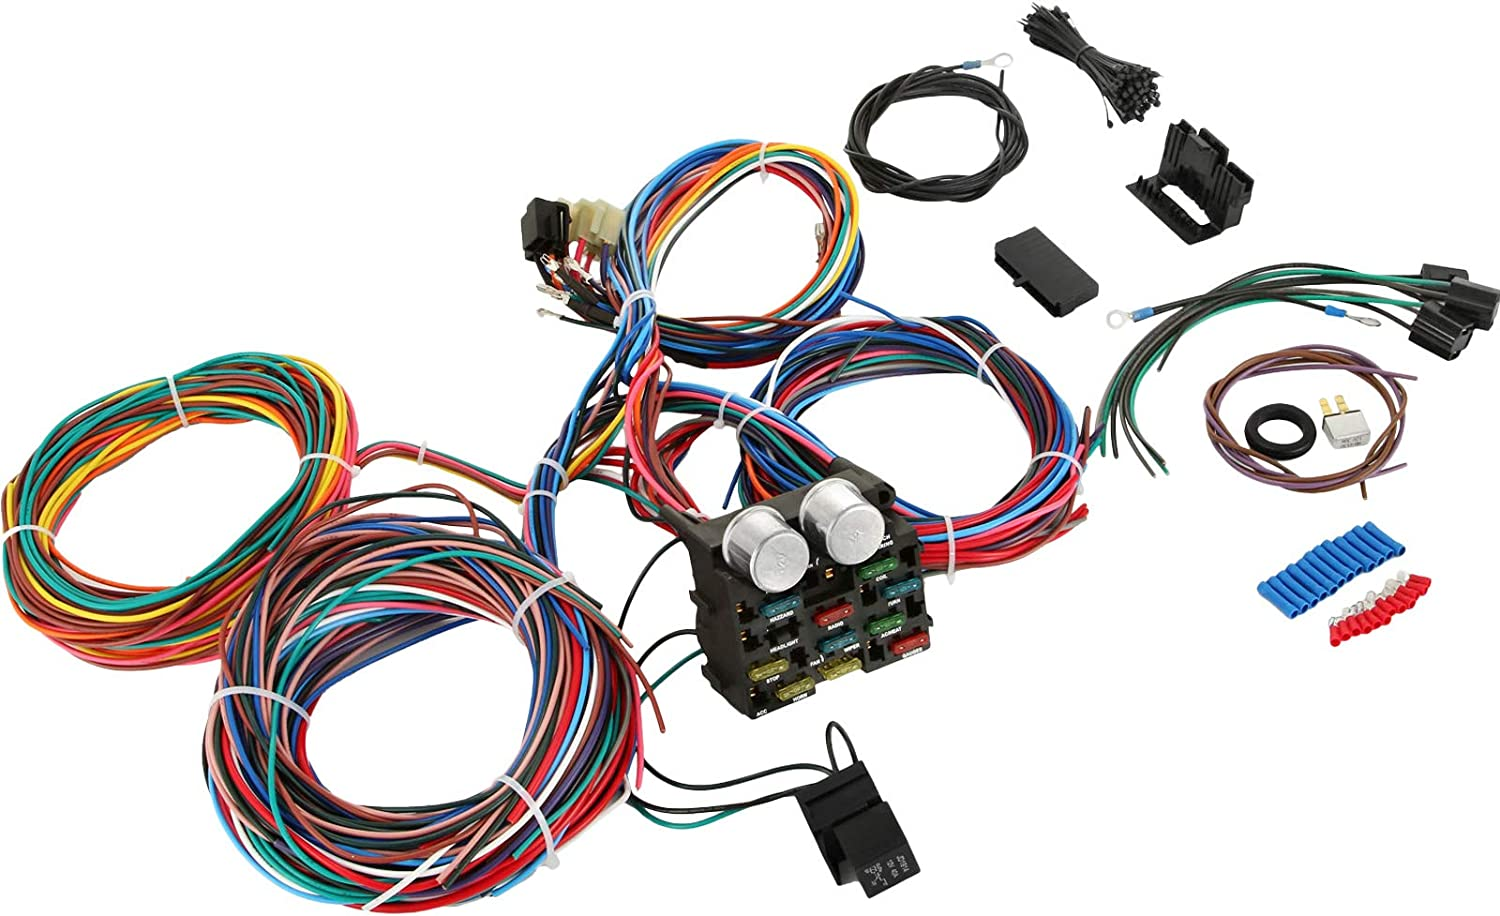 Amazon.com: Mophorn Standalone Wiring Harness, Universal Hot Rod Wiring  Harness, Extra Long Wiring Harness Kit with 17 Fuse Blocks and 12 Circuits,  Professional Wiring Harness for Hot Rod/ Street Rod XL Wires:Amazon.com